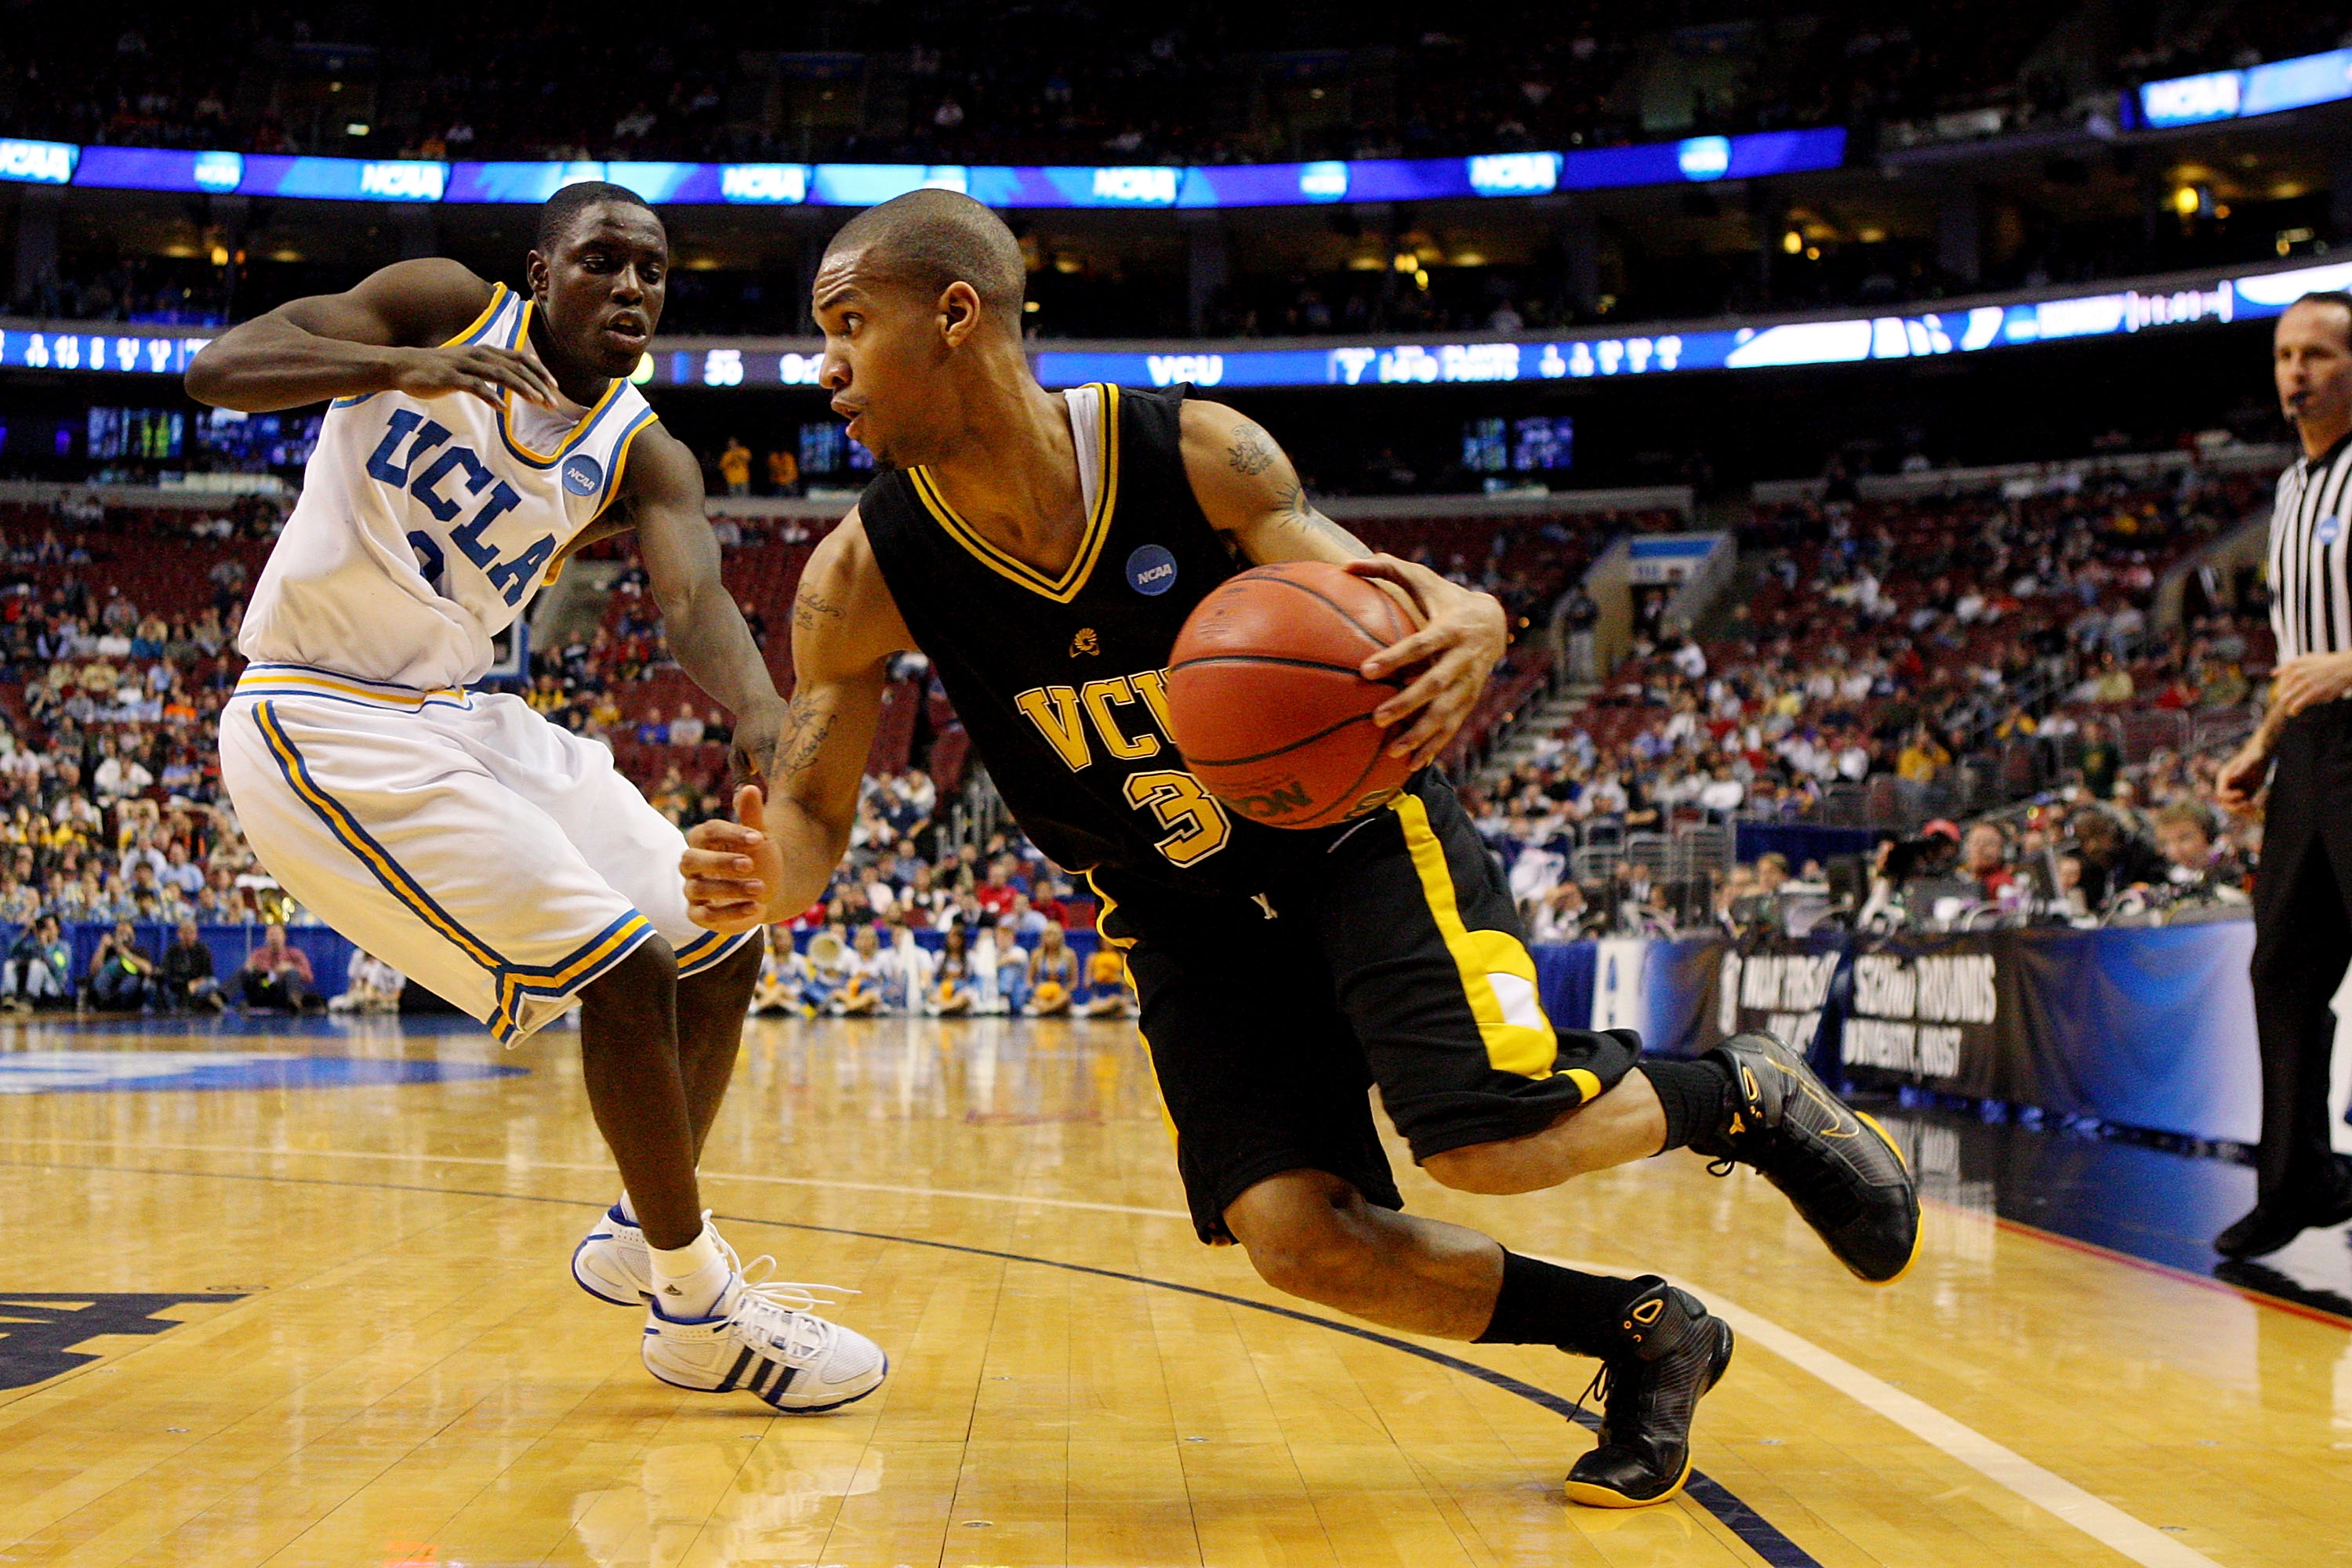 PHILADELPHIA - MARCH 19:  Eric Maynor #3 of the VCU Rams drives against Darren Collison #2 of the UCLA Bruins during the first round of the NCAA Division I Men's Basketball Tournament at the Wachovia Center on March 19, 2009 in Philadelphia, Pennsylvania.